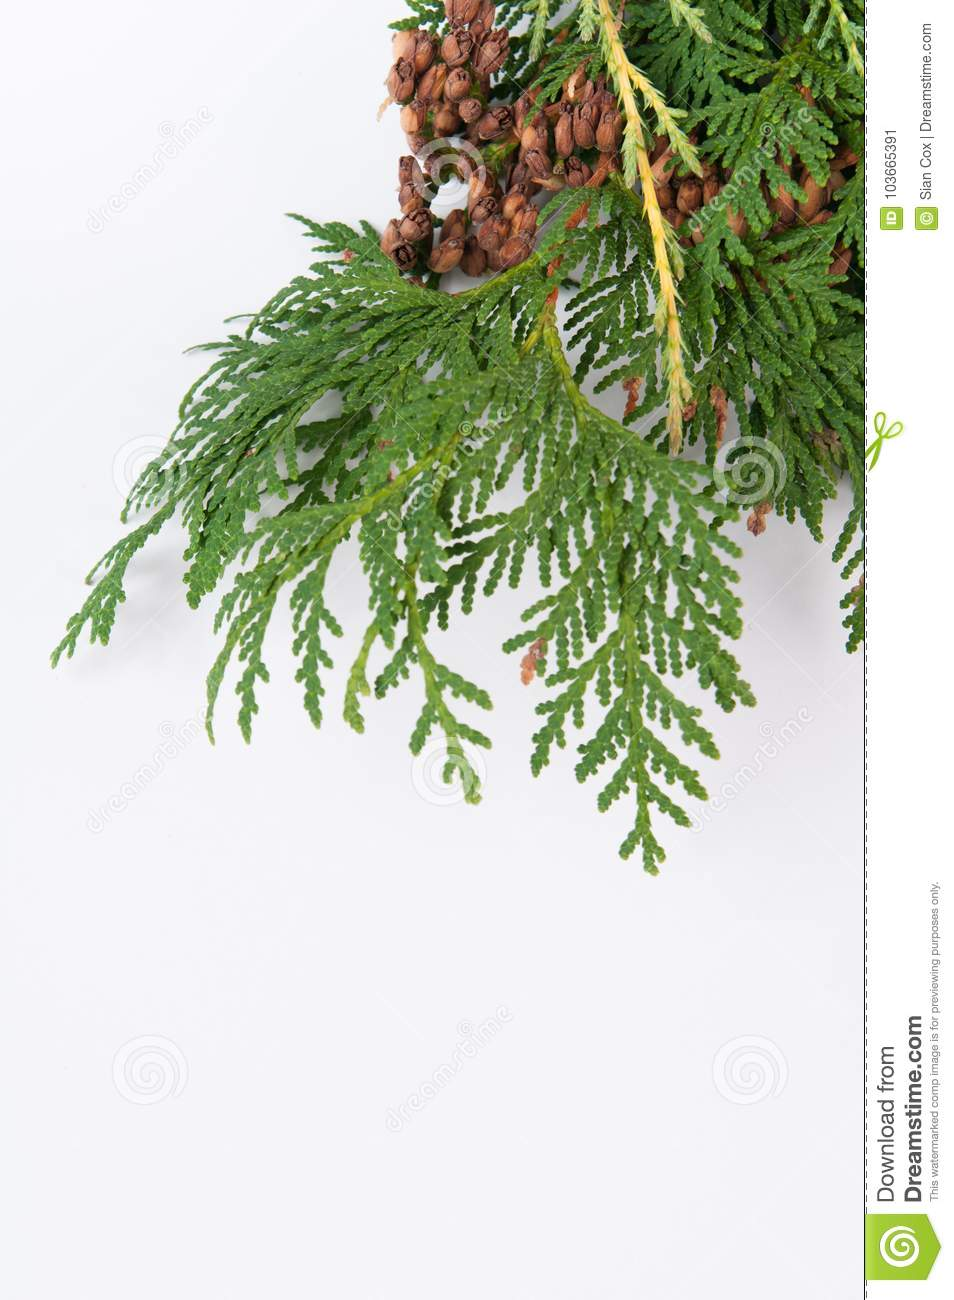 Christmas Greenery Images.Christmas Greenery On A White Background With Copy Space